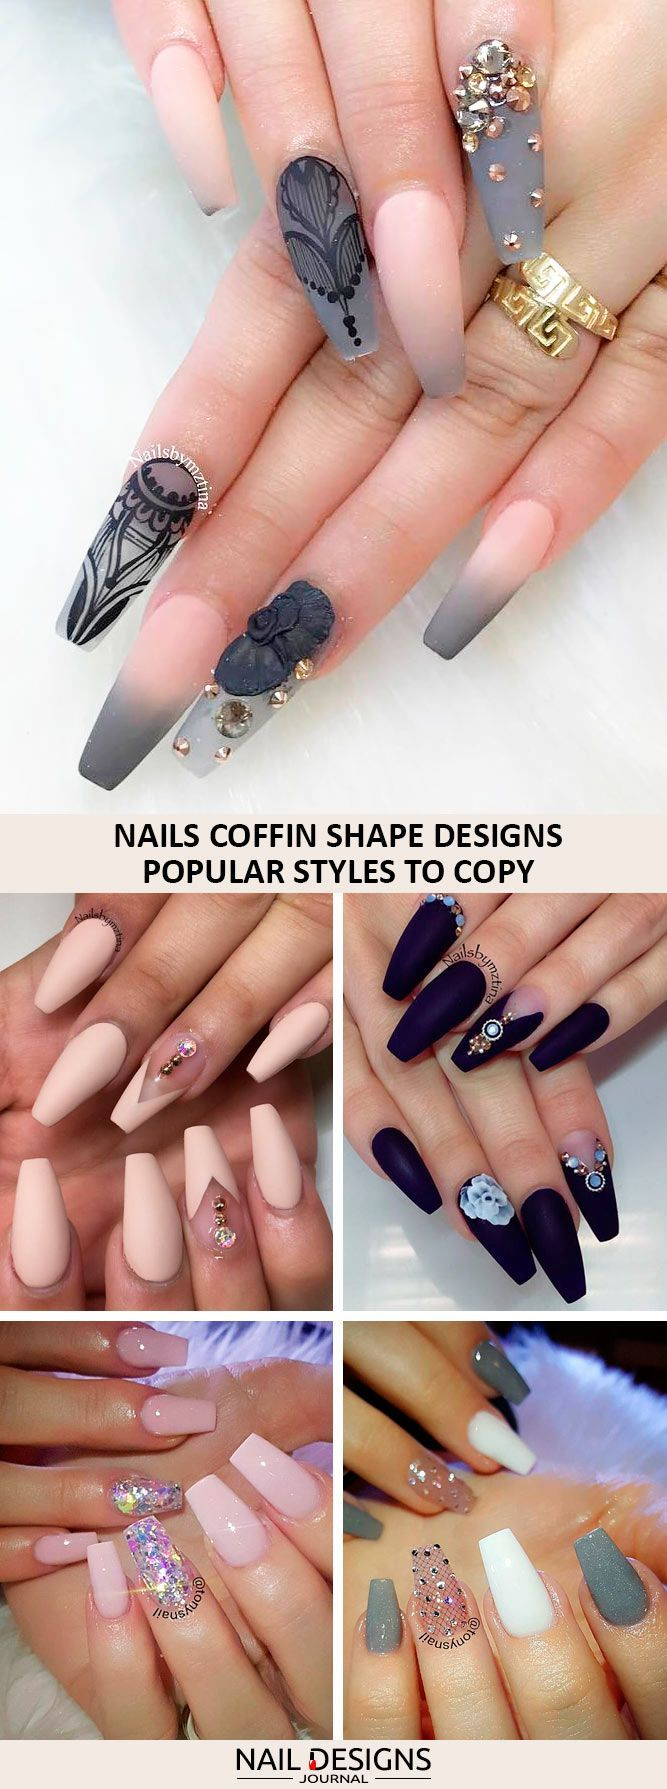 916 best Nails images on Pinterest | Nail scissors, Nail art designs ...